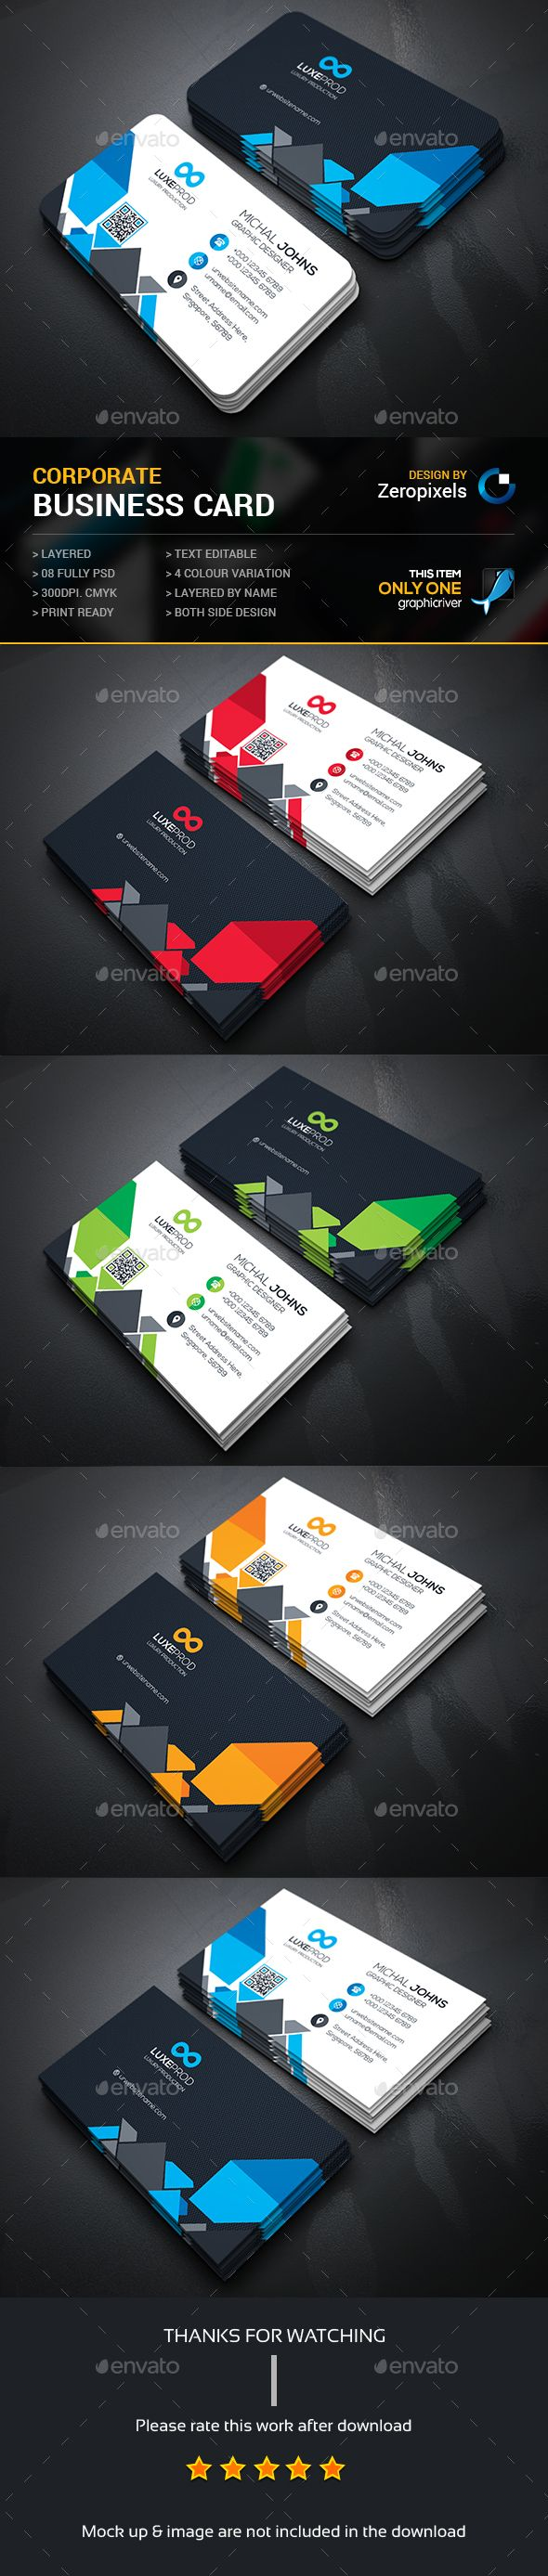 Corporate Business Card Template PSD. Download here: http://graphicriver.net/item/corporate-business-card/15934983?ref=ksioks